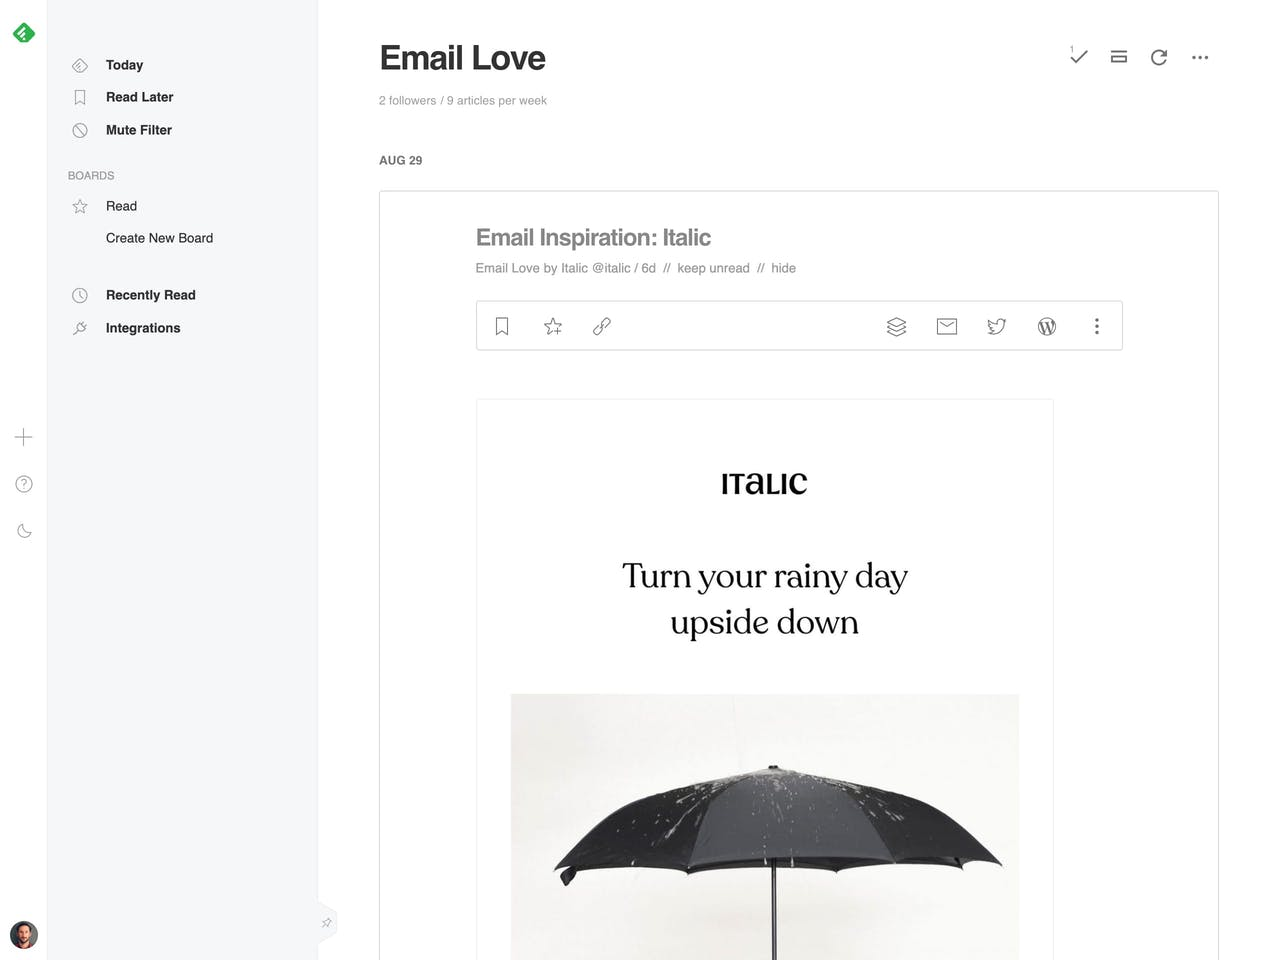 Email Love RSS feed preview on feedly Screenshot